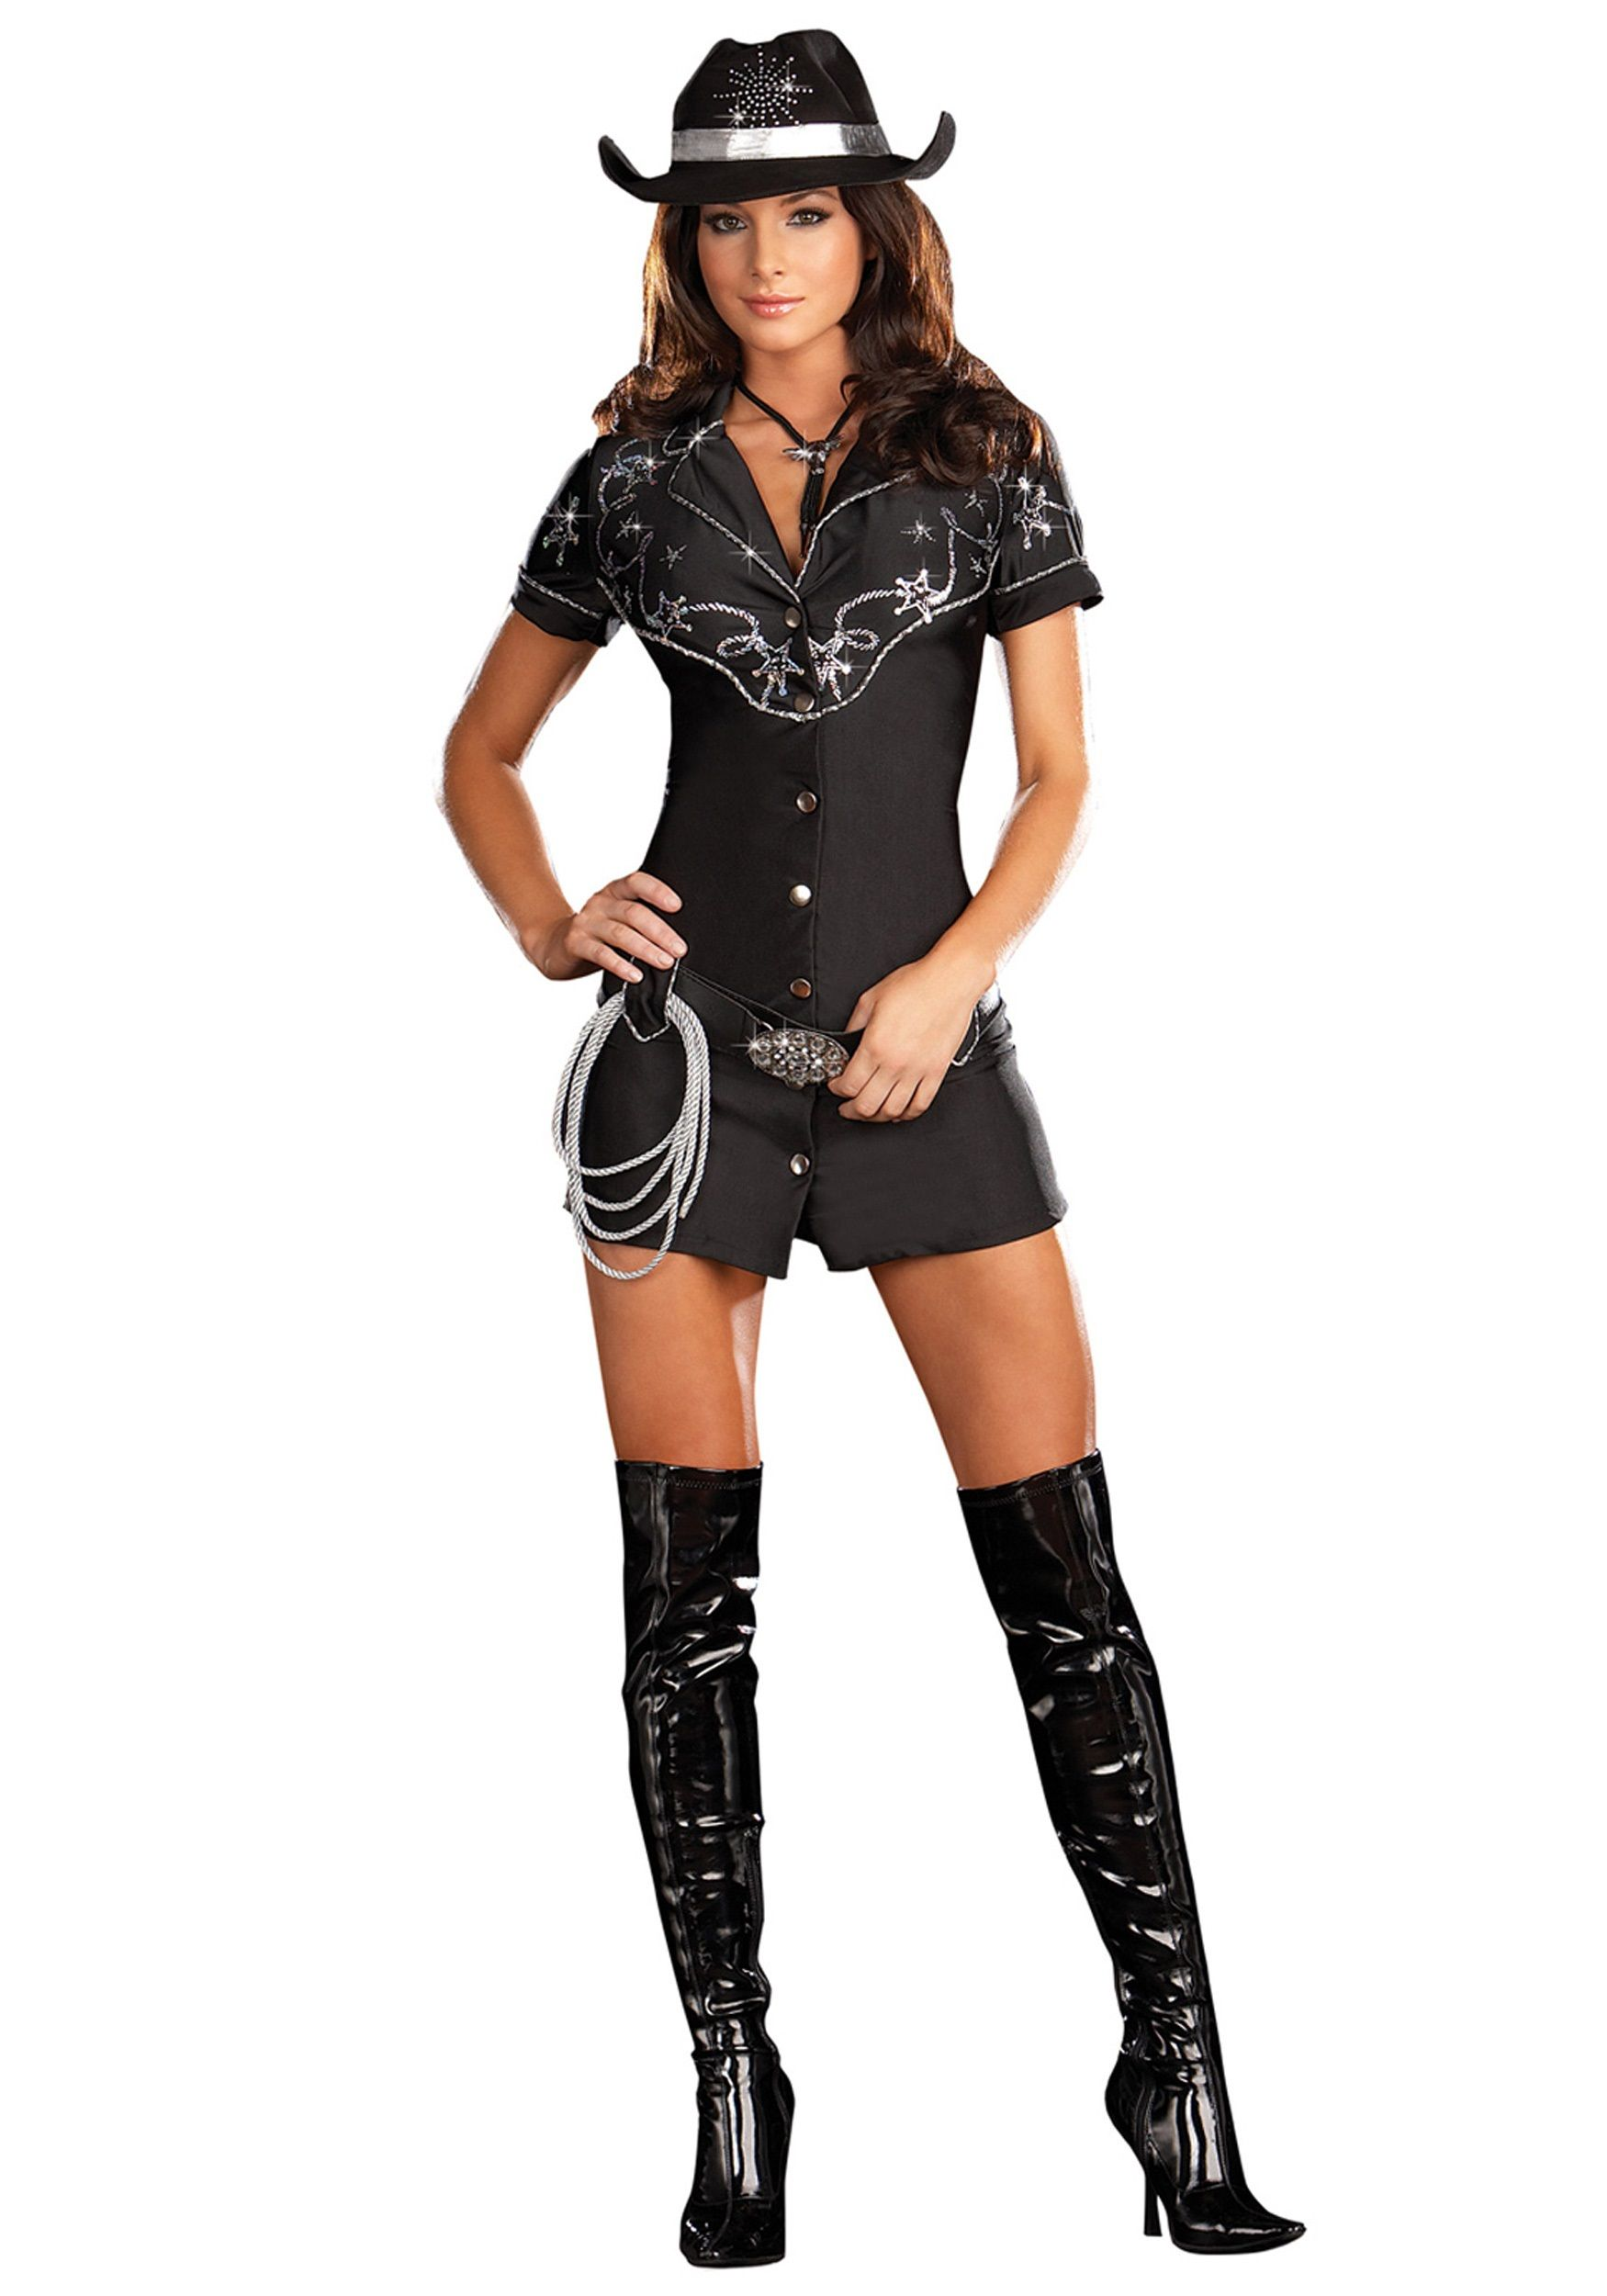 cowboys & cowgirls attires | home > halloween costume ideas > cowboy